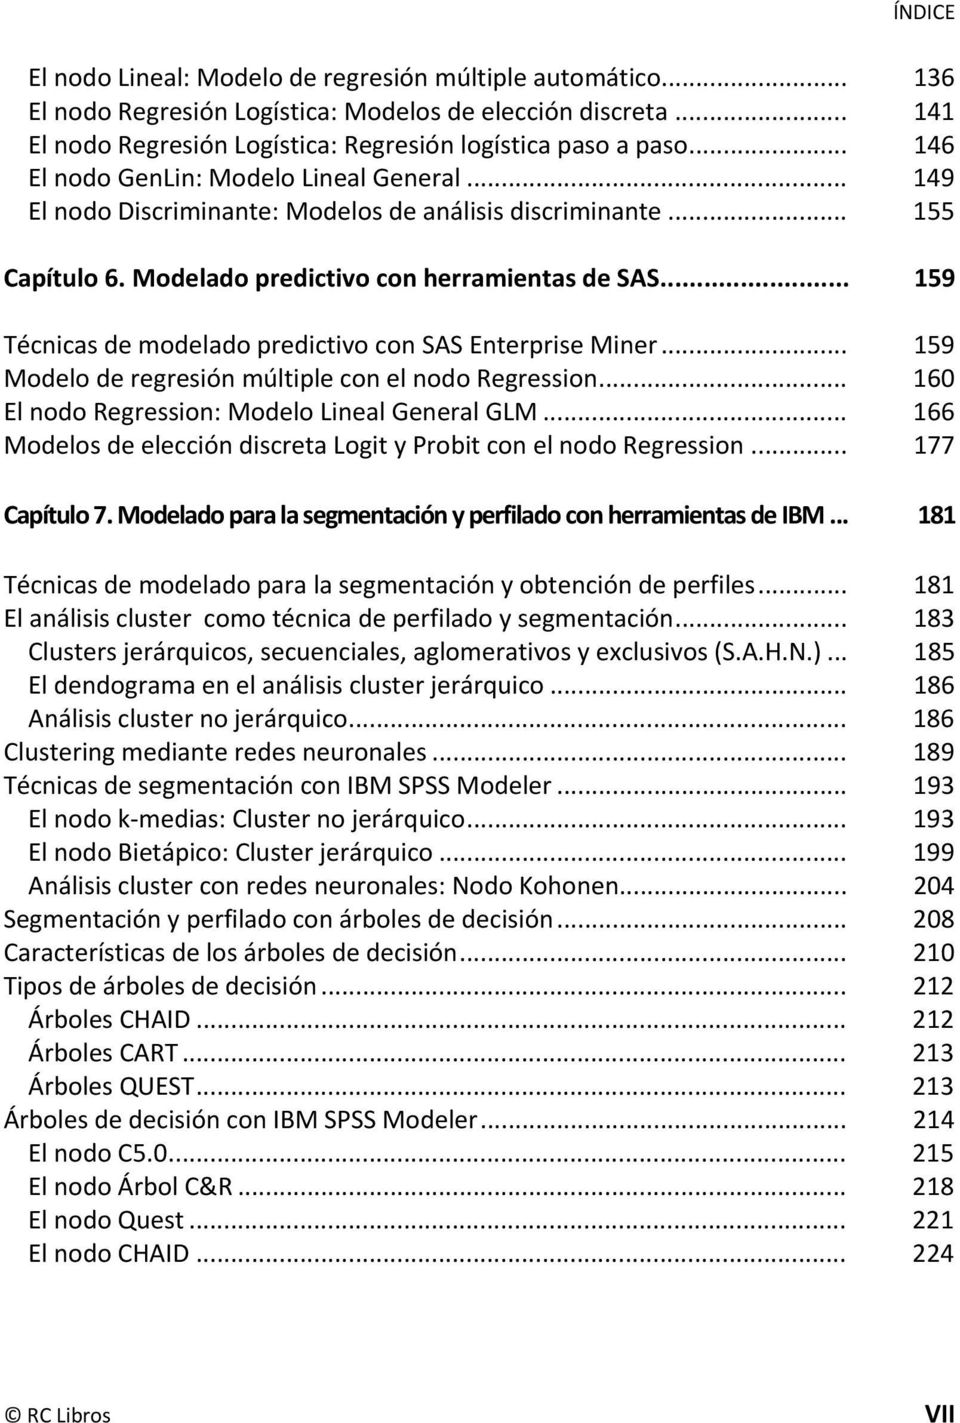 .. 159 Técnicas de modelado predictivo con SAS Enterprise Miner... 159 Modelo de regresión múltiple con el nodo Regression... 160 El nodo Regression: Modelo Lineal General GLM.